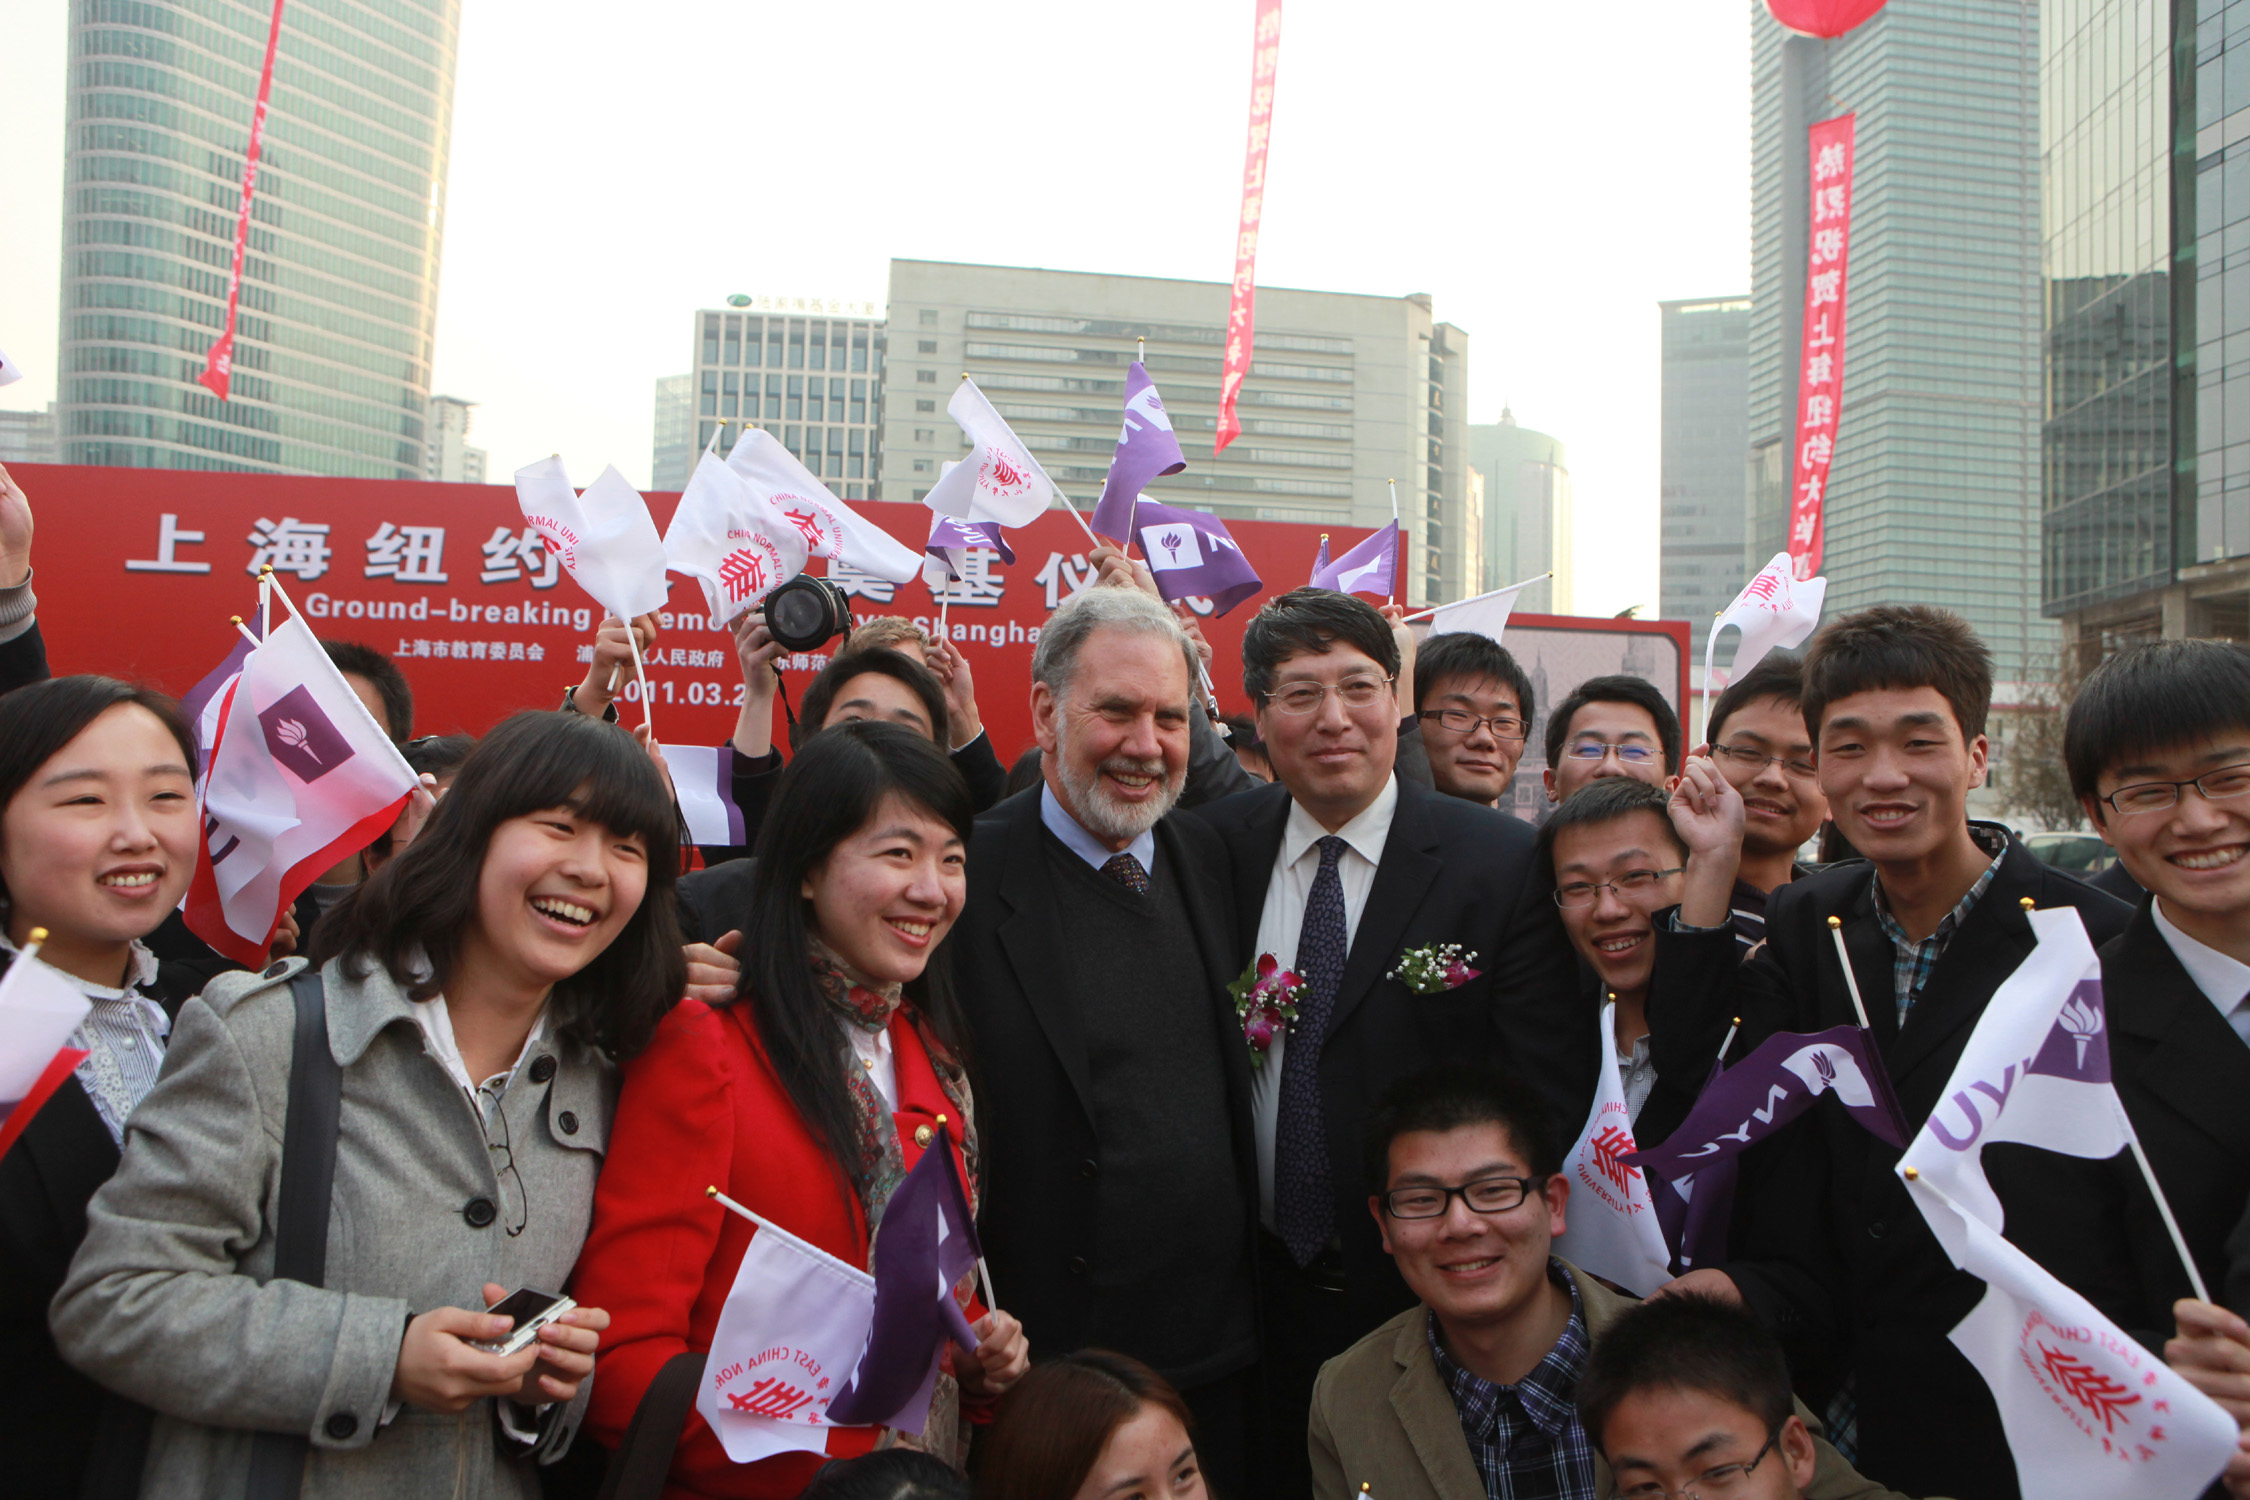 New York University president John Sexton and East China Normal University president Yu Lizhong pose with students at the ground-breaking ceremony for NYU Shanghai on March 28, 2011 in Shanghai, China.